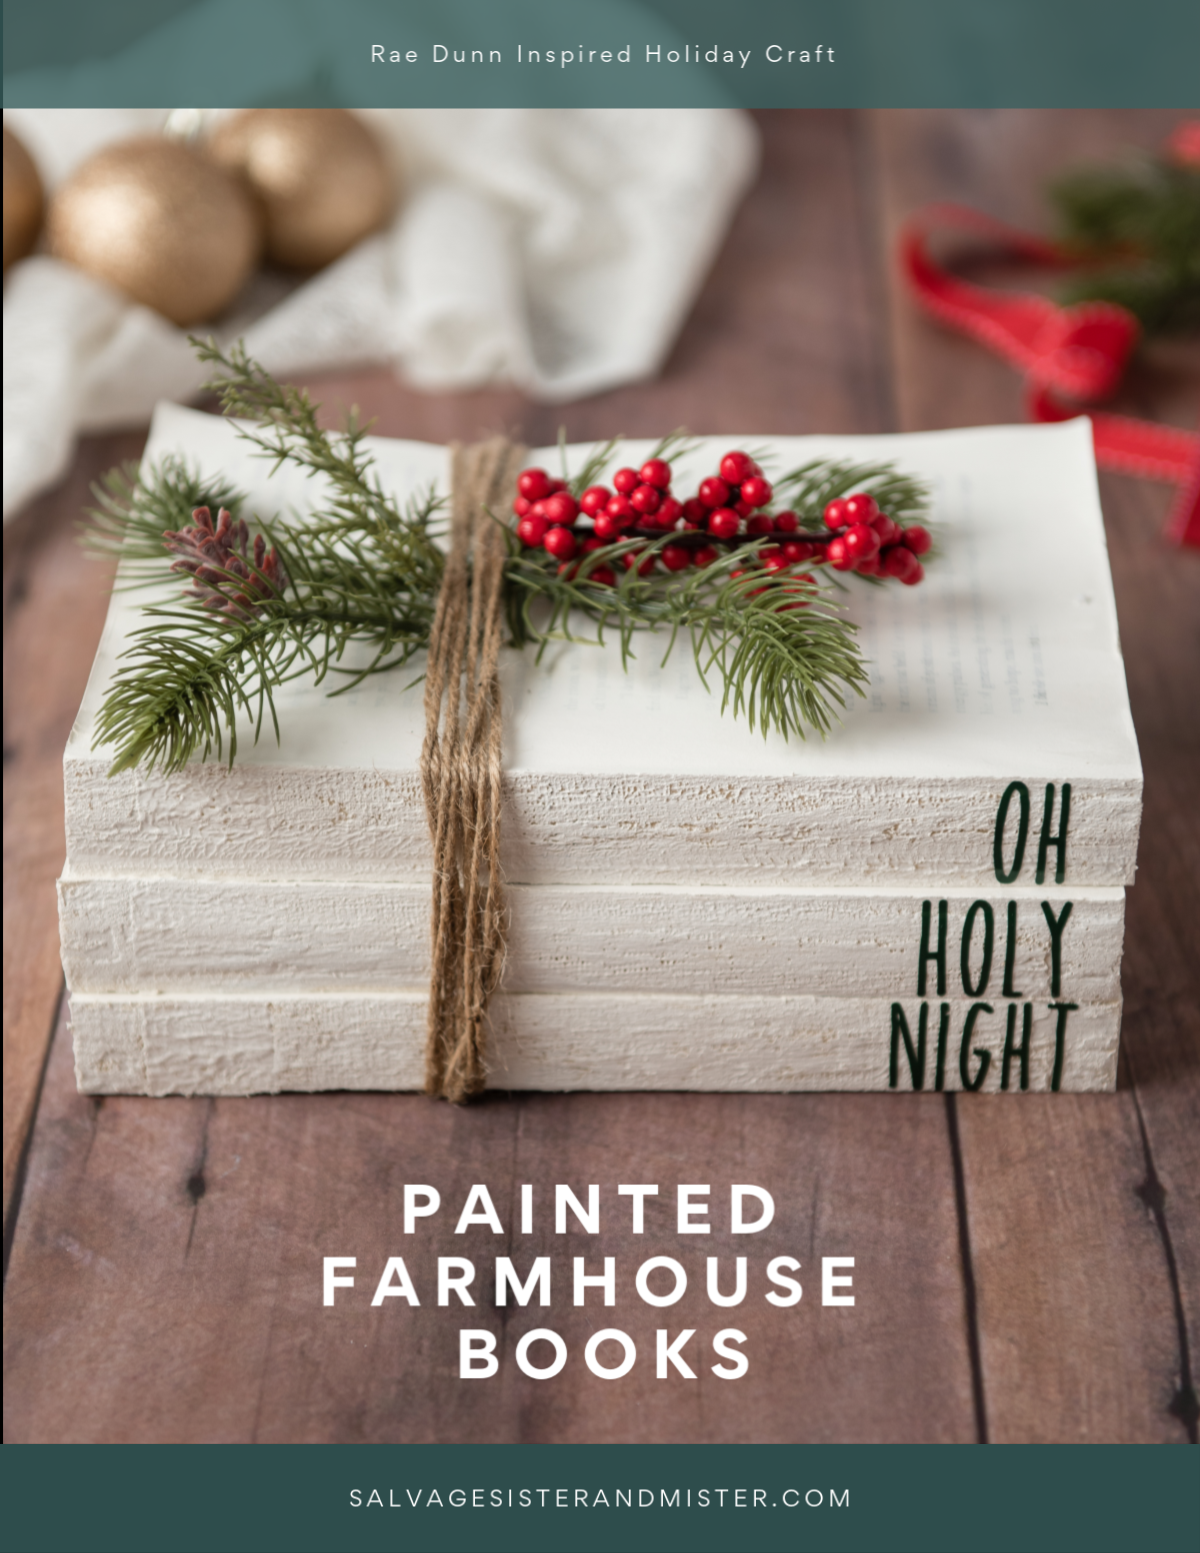 Holiday craft reuse - Rae Dunn inspired decorative painted farmhouse Christmas books is great for your holiday decor...budget friendly and a great way to reuse old thrift store books that need a new life. Simple to make and great with a cricut or silhouette, find the step by step tutorial on salvagesisterandmister.com